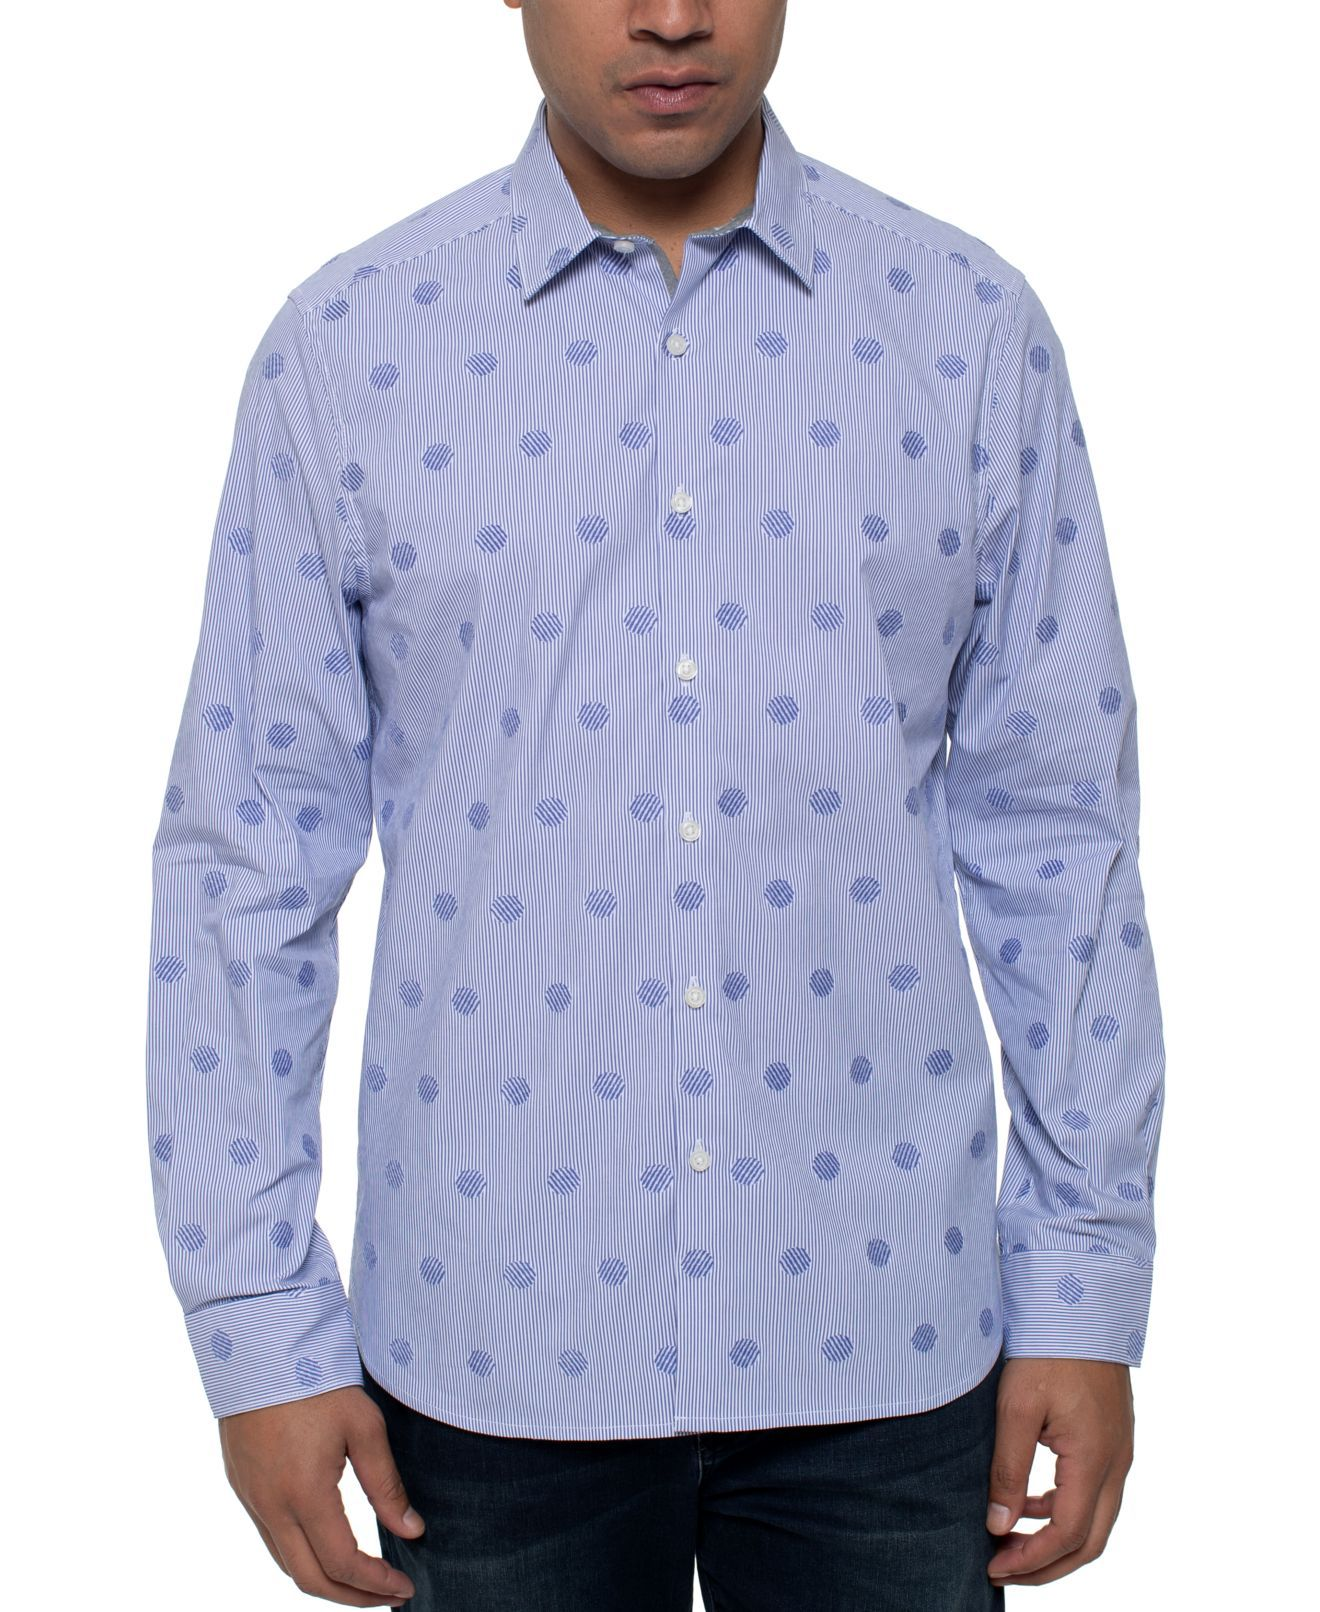 Kenneth Cole Mens Shirt Blue Size Small S Striped Dot Button-Down